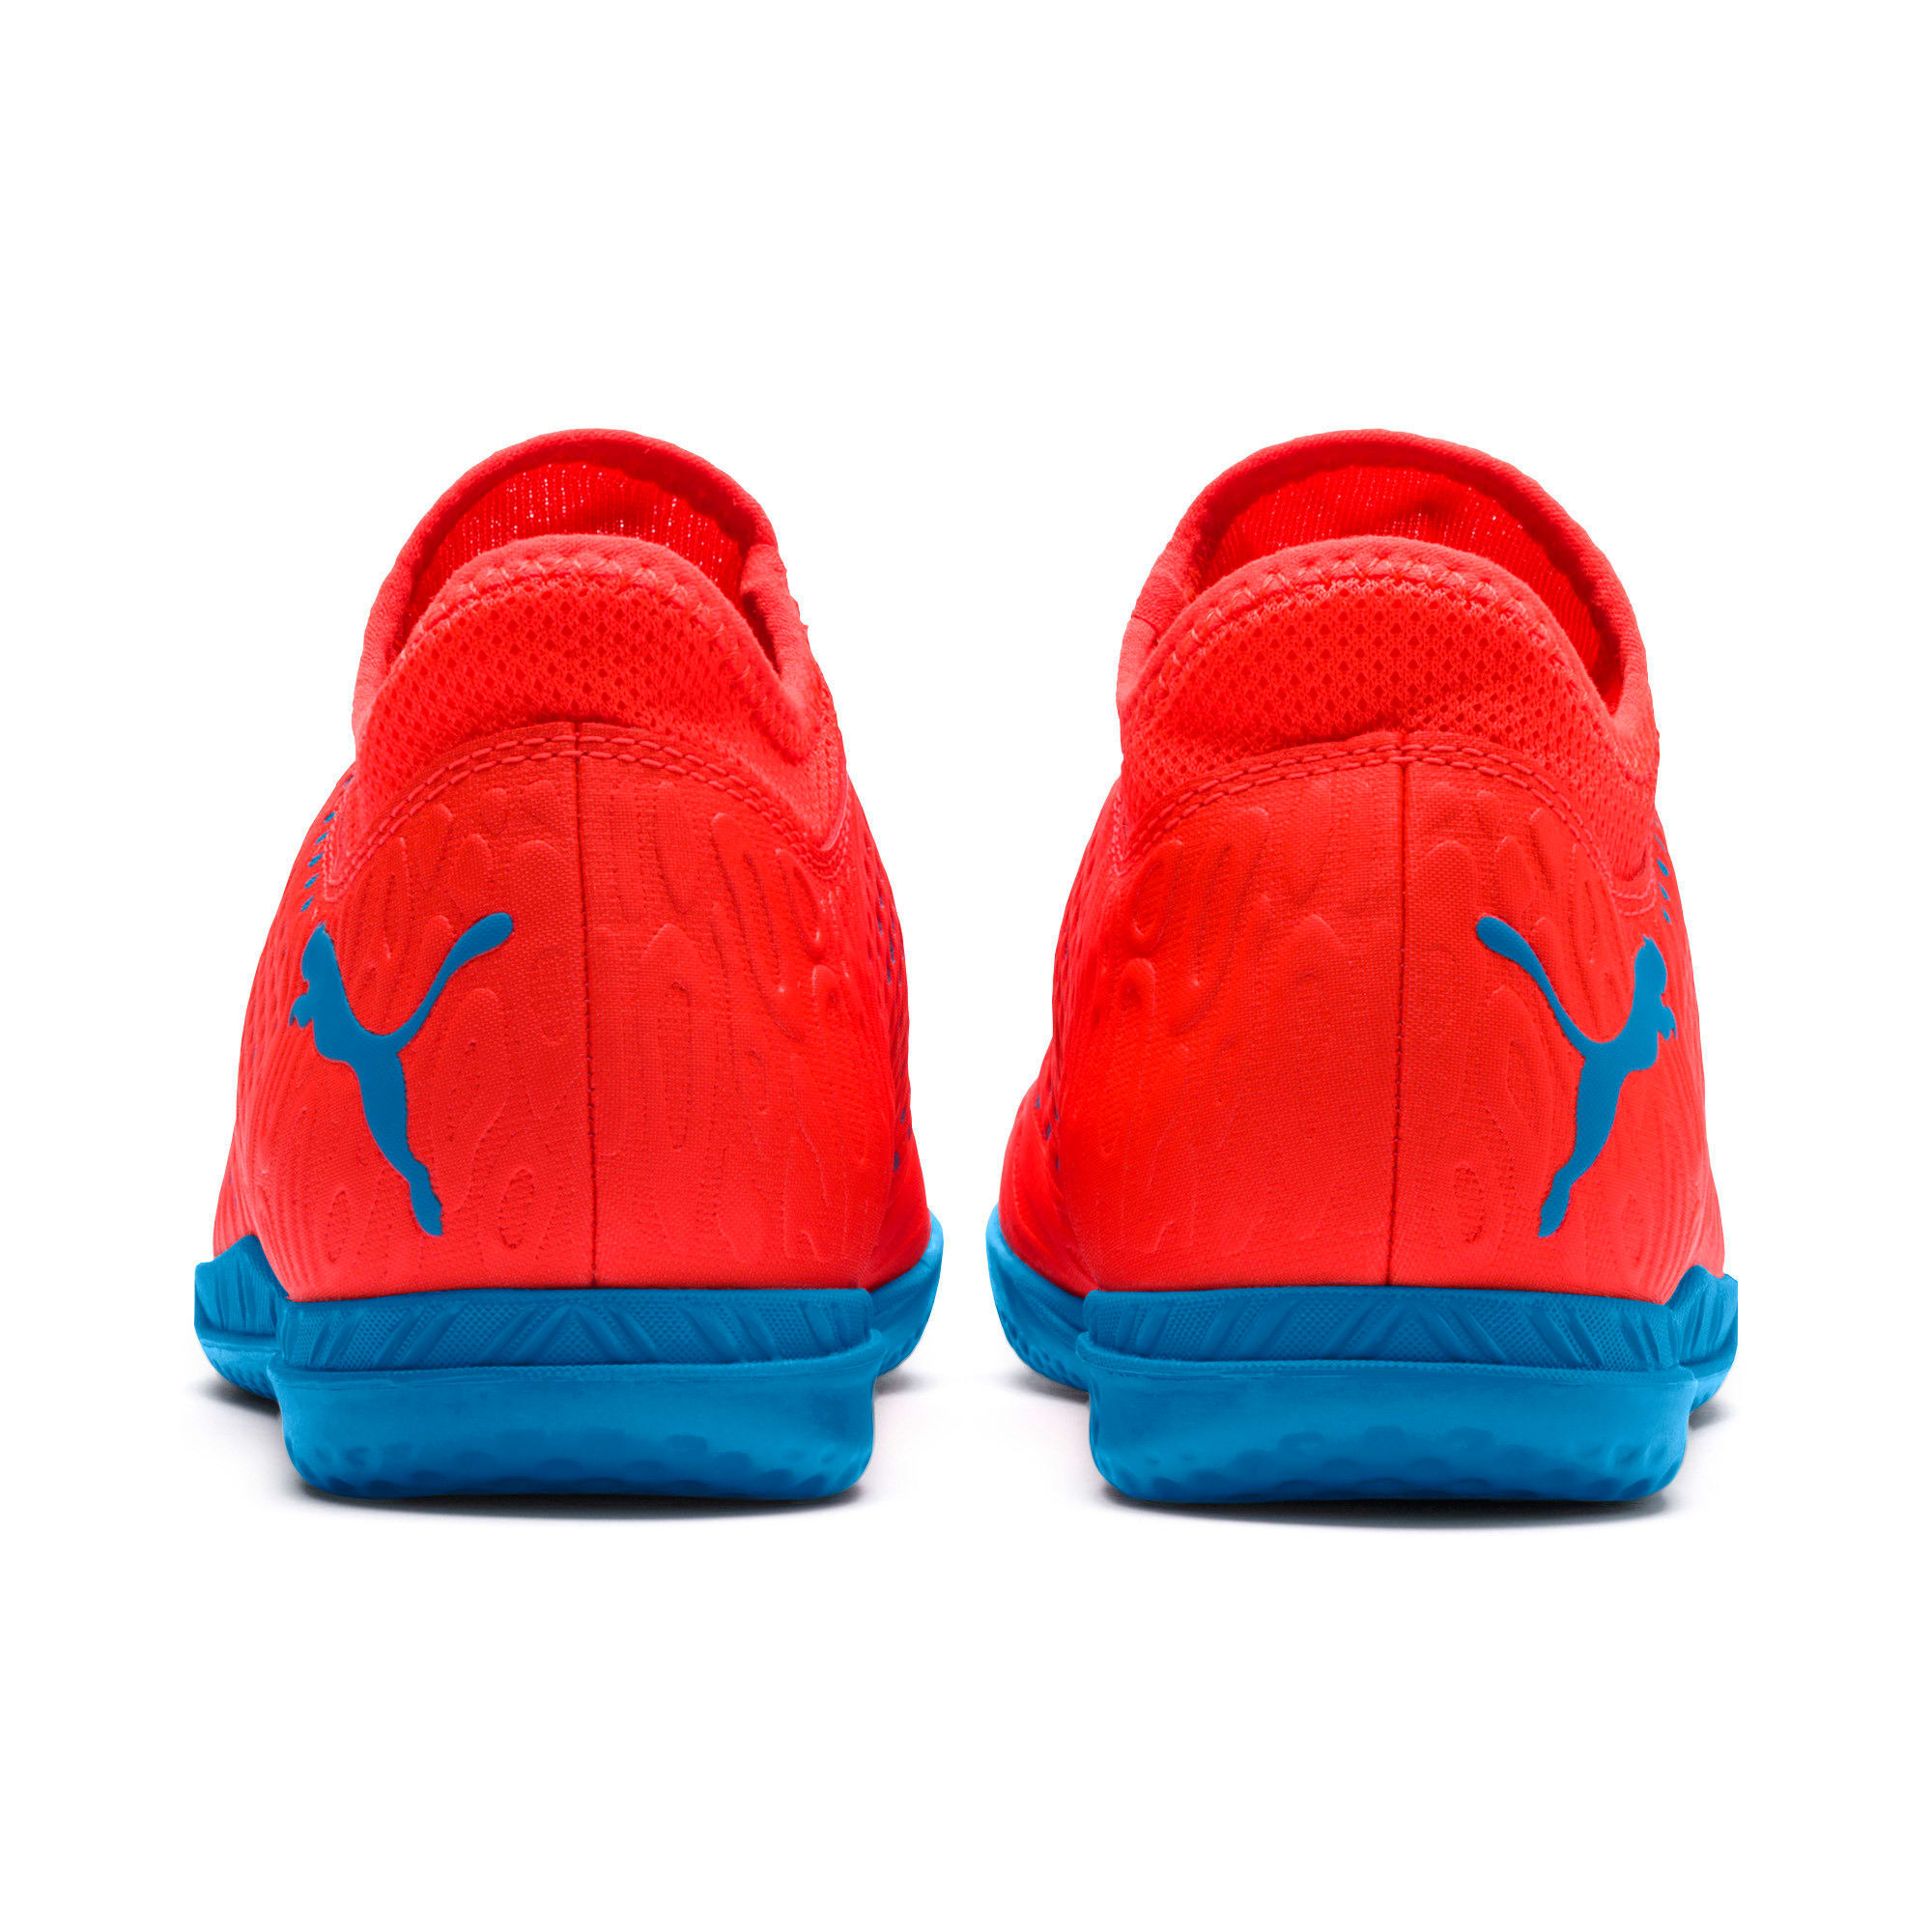 Thumbnail 3 of FUTURE 19.4 IT Soccer Shoes JR, Red Blast-Bleu Azur, medium